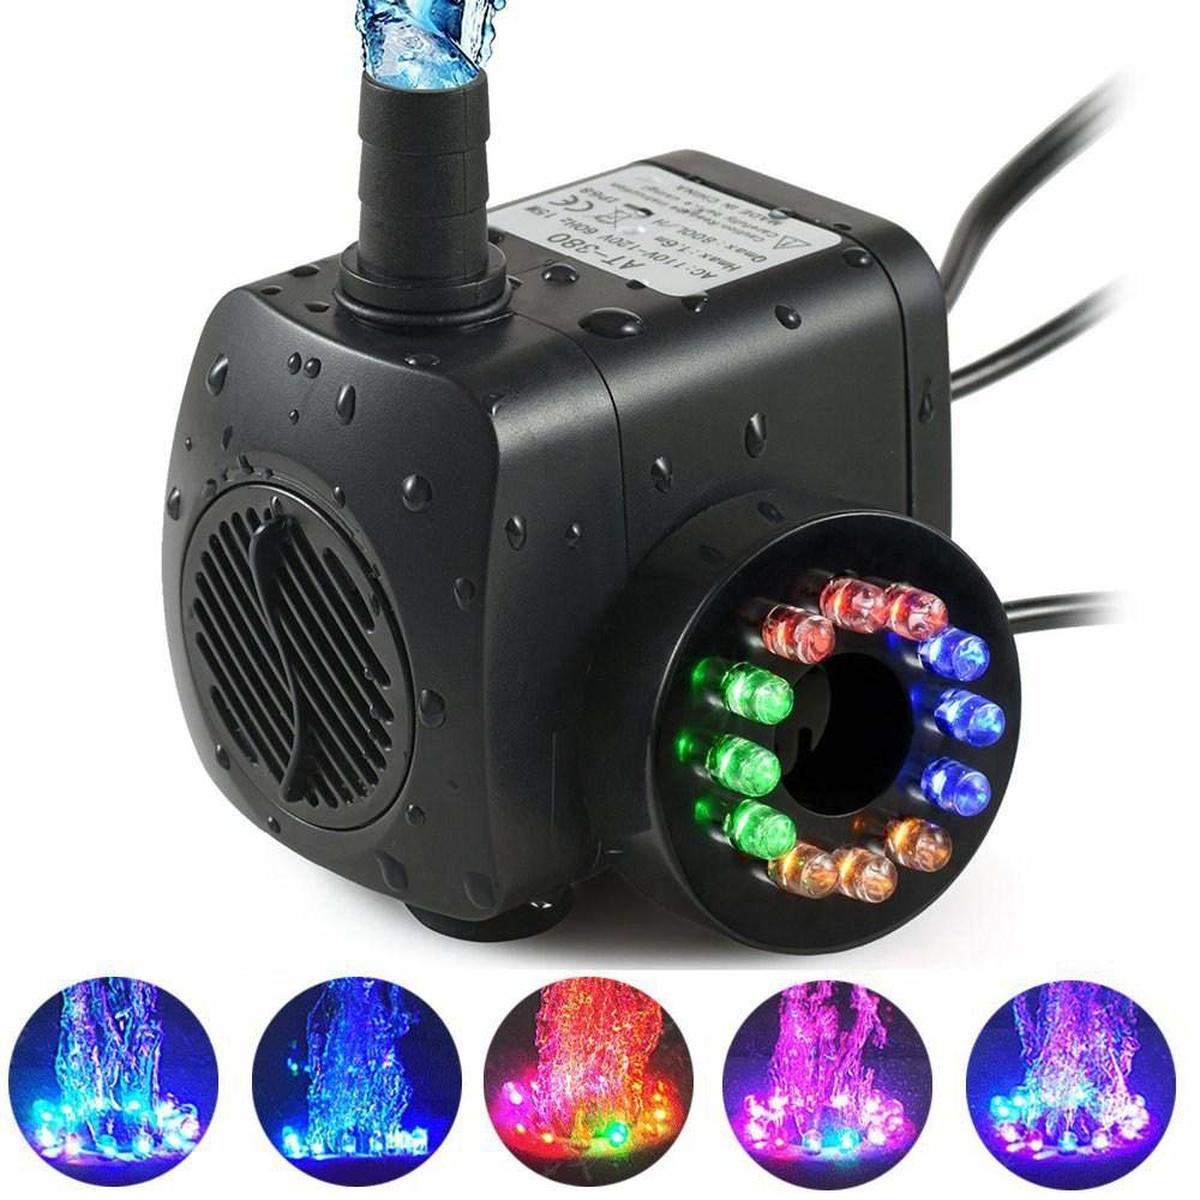 <font><b>110V</b></font> 220V Submersible <font><b>Water</b></font> <font><b>Pumps</b></font> for Aquarium Fish Tank Garden Pond Statuary Outdoor Fountain <font><b>Pump</b></font> with 12 PCS RGB LED Lights image